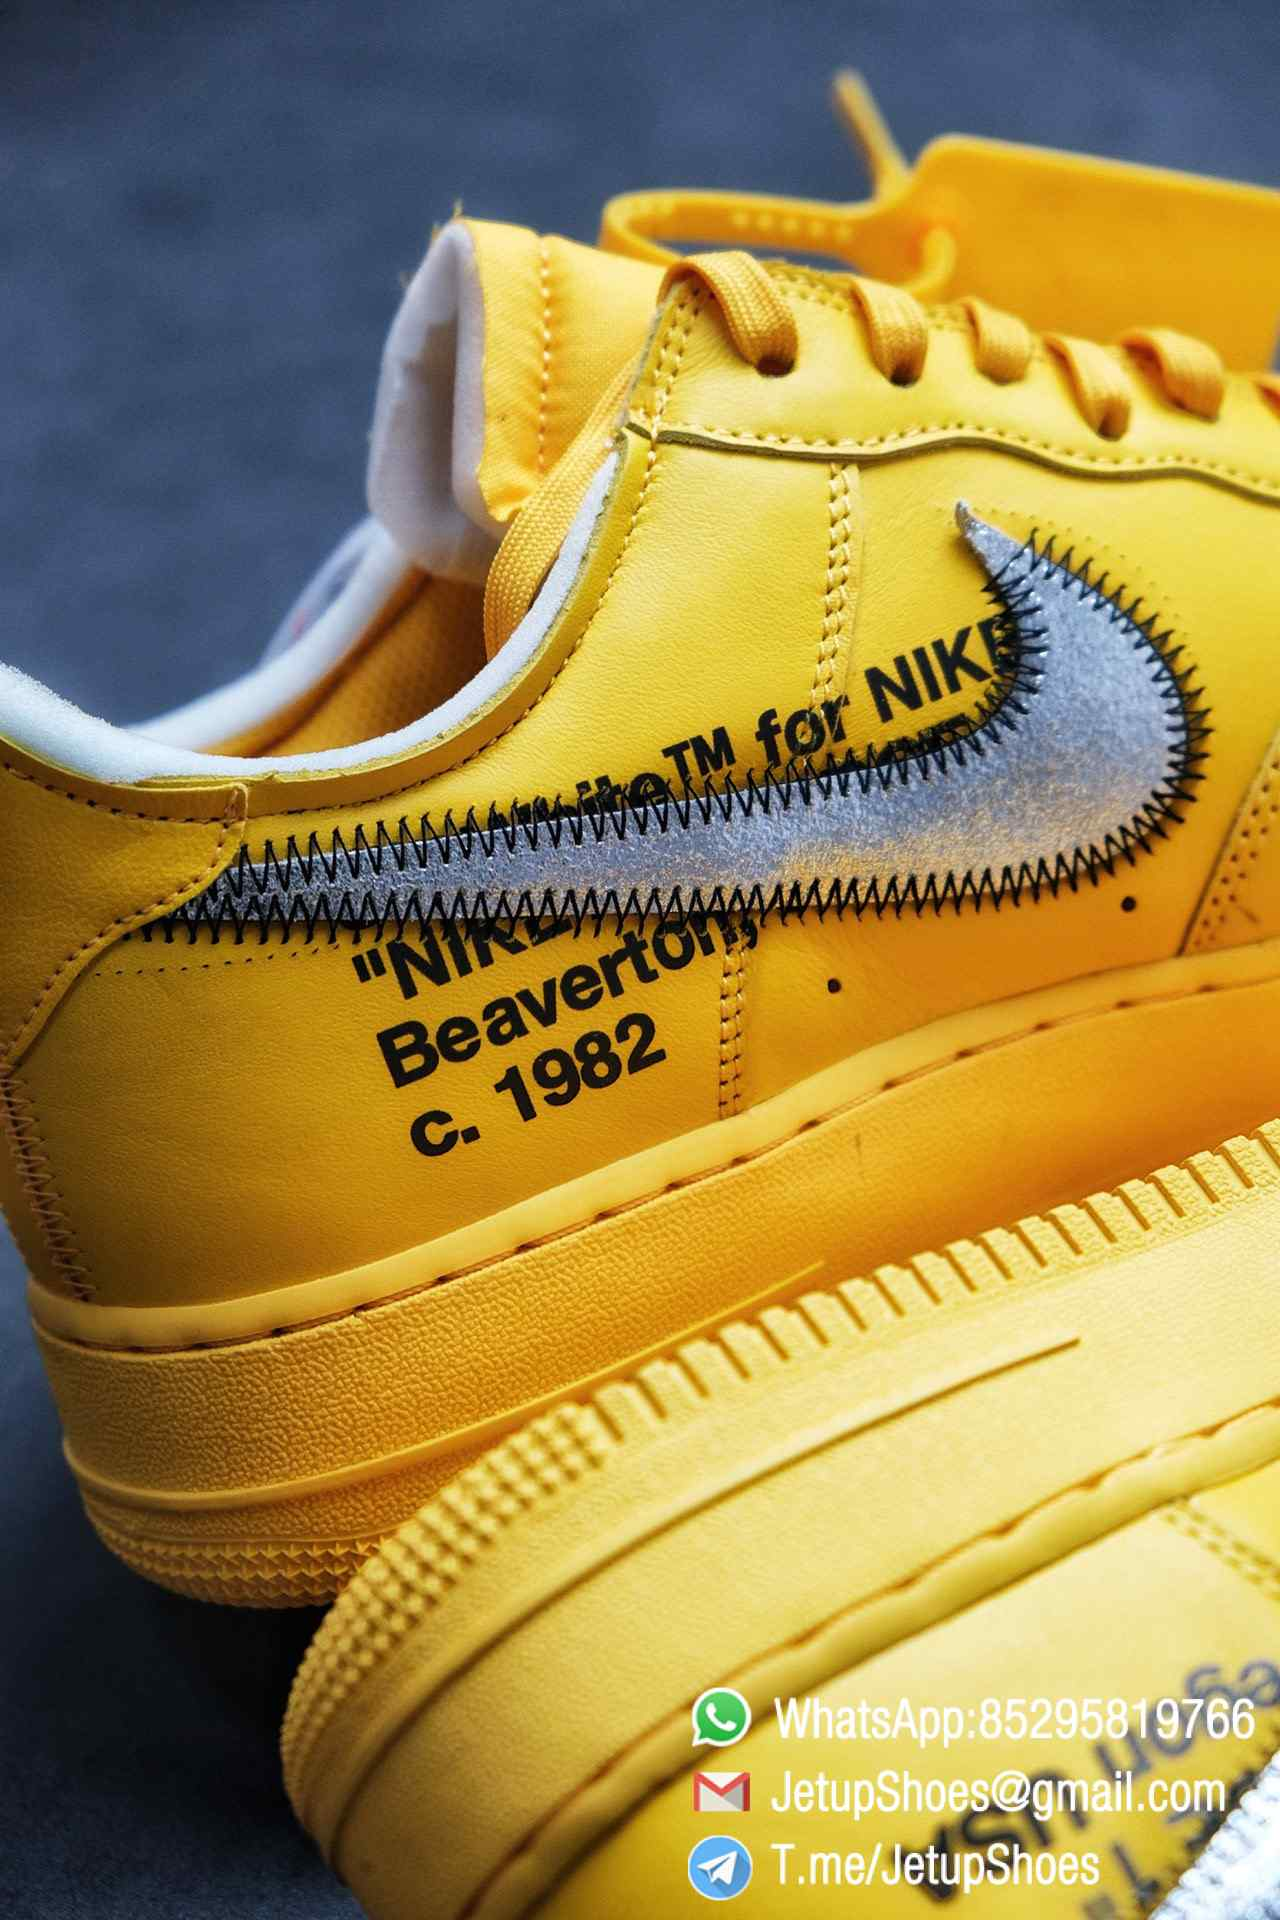 Best Replica Sneakers Off White x Air Force 1 Low University Gold SKU DD1876 700 Top Quality Basketball Shoes 012